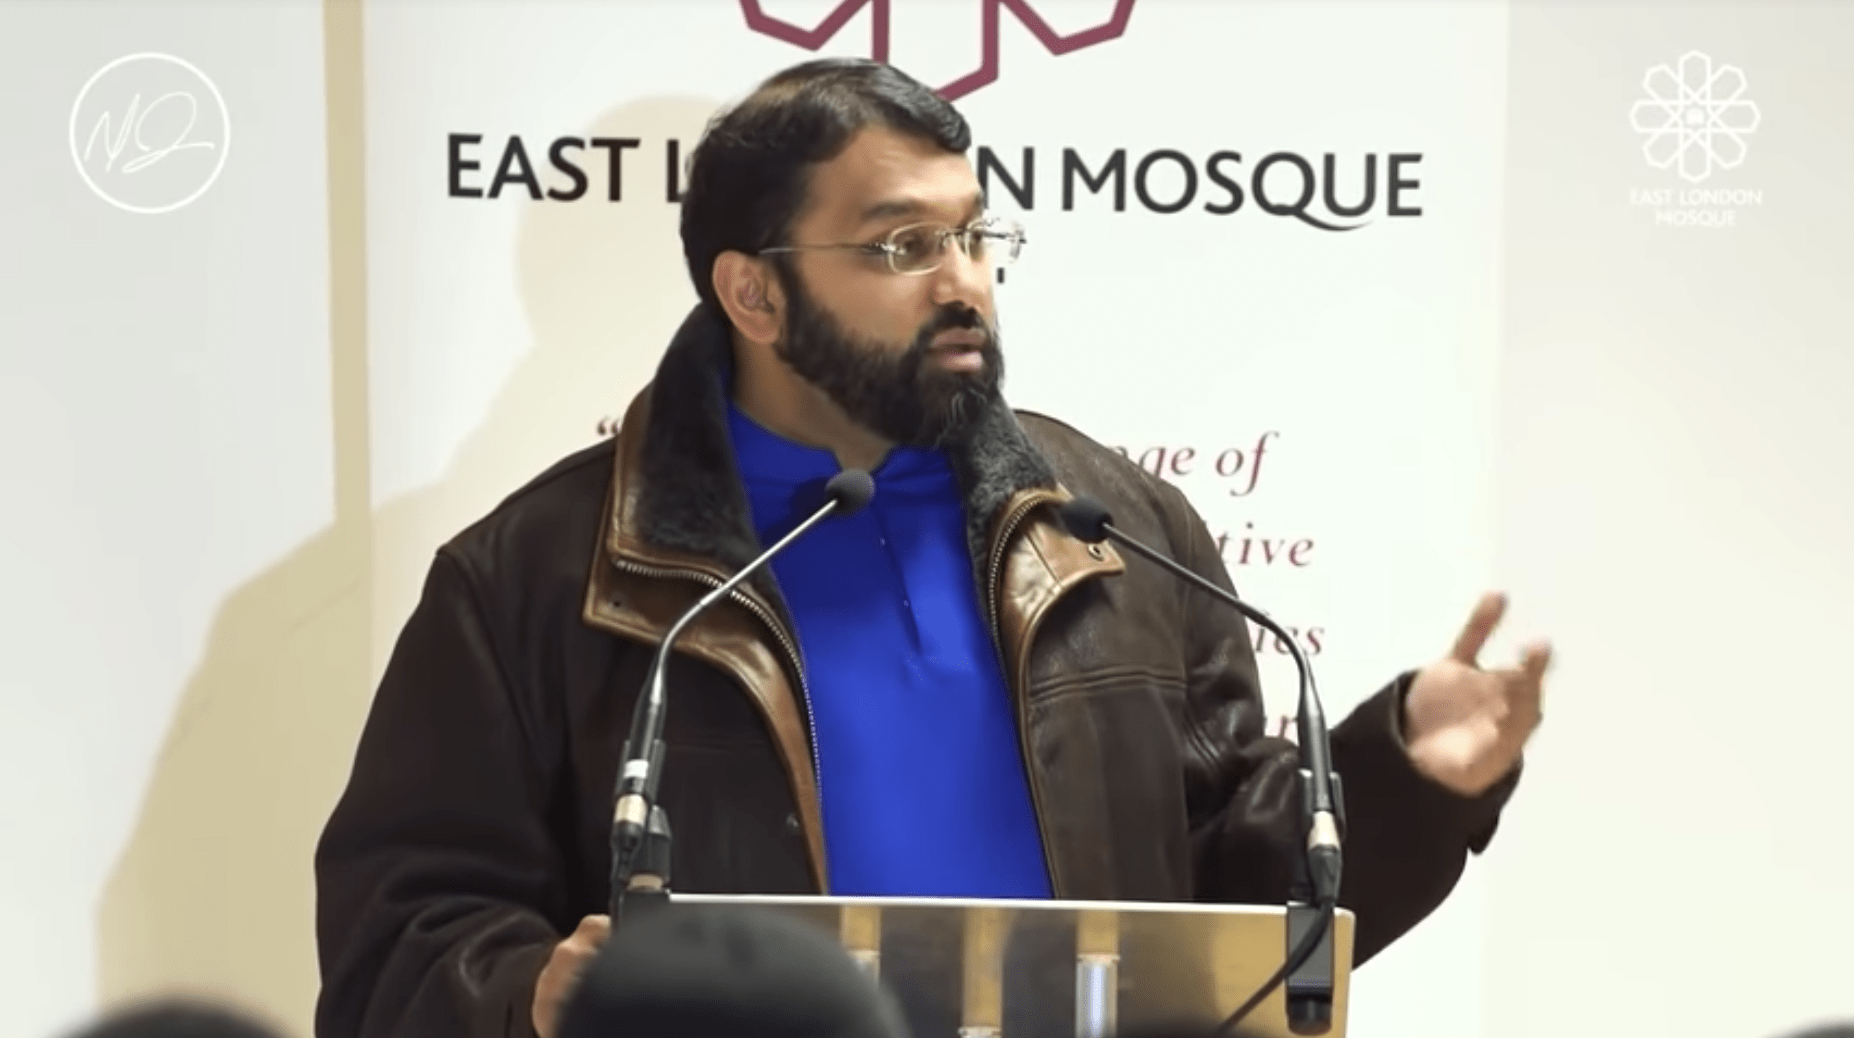 Yasir Qadhi – The Road Map of Death: Planning Your Legacy of Life